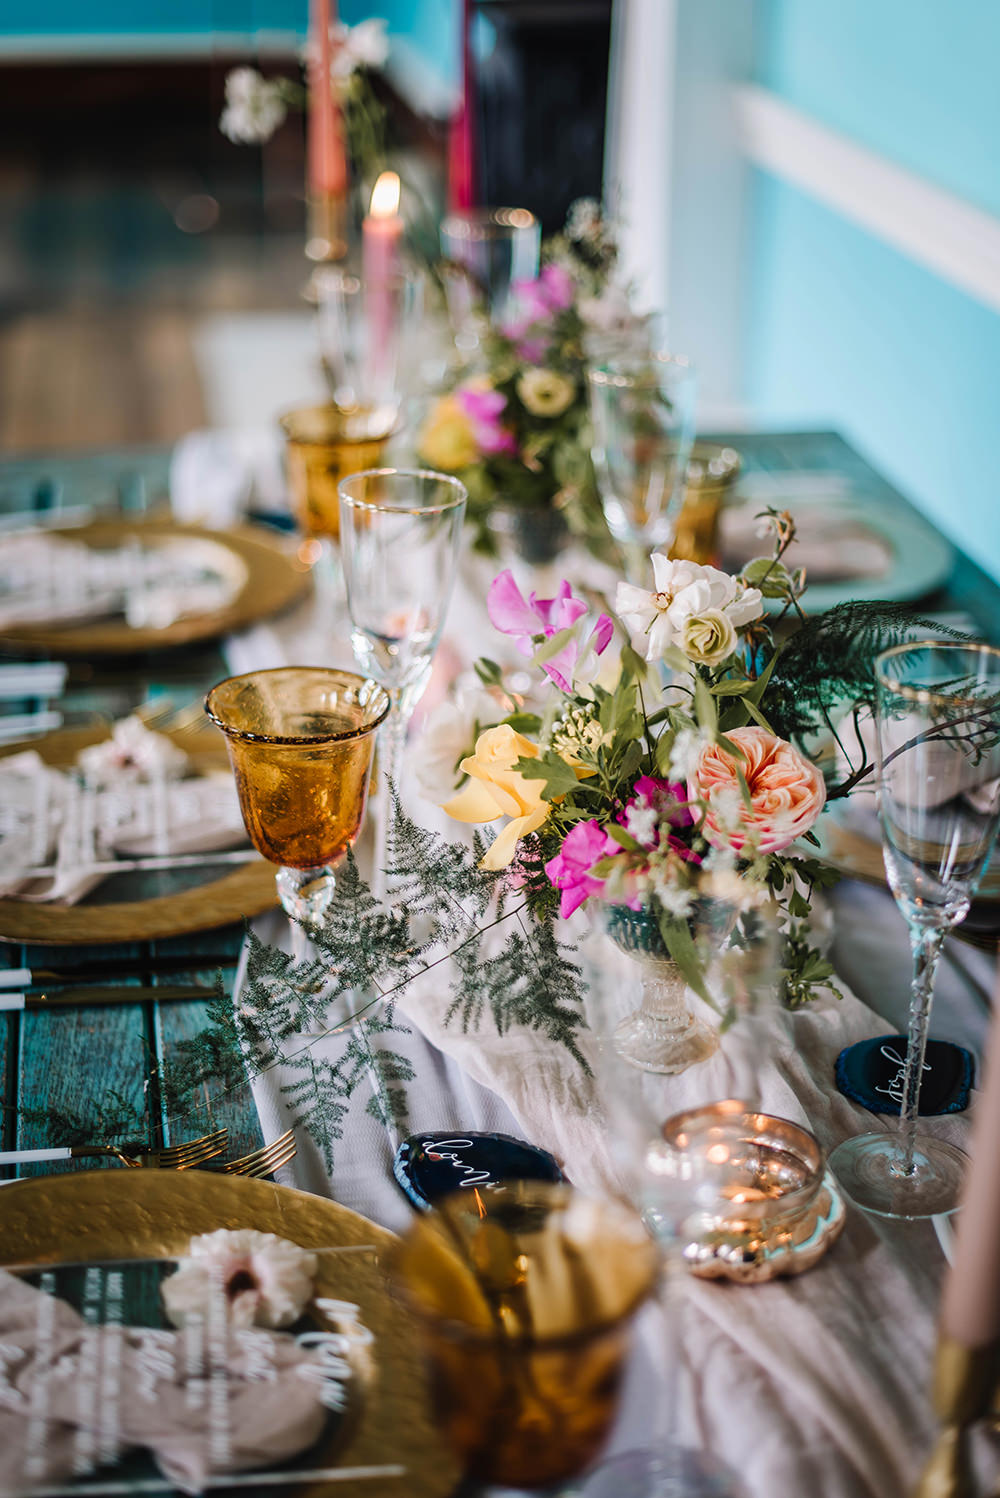 Table Tablescape Decor Decoration Flowers Candles Silk Runner Gold Coral Floral Wedding Ideas Birgitta Zoutman Photography